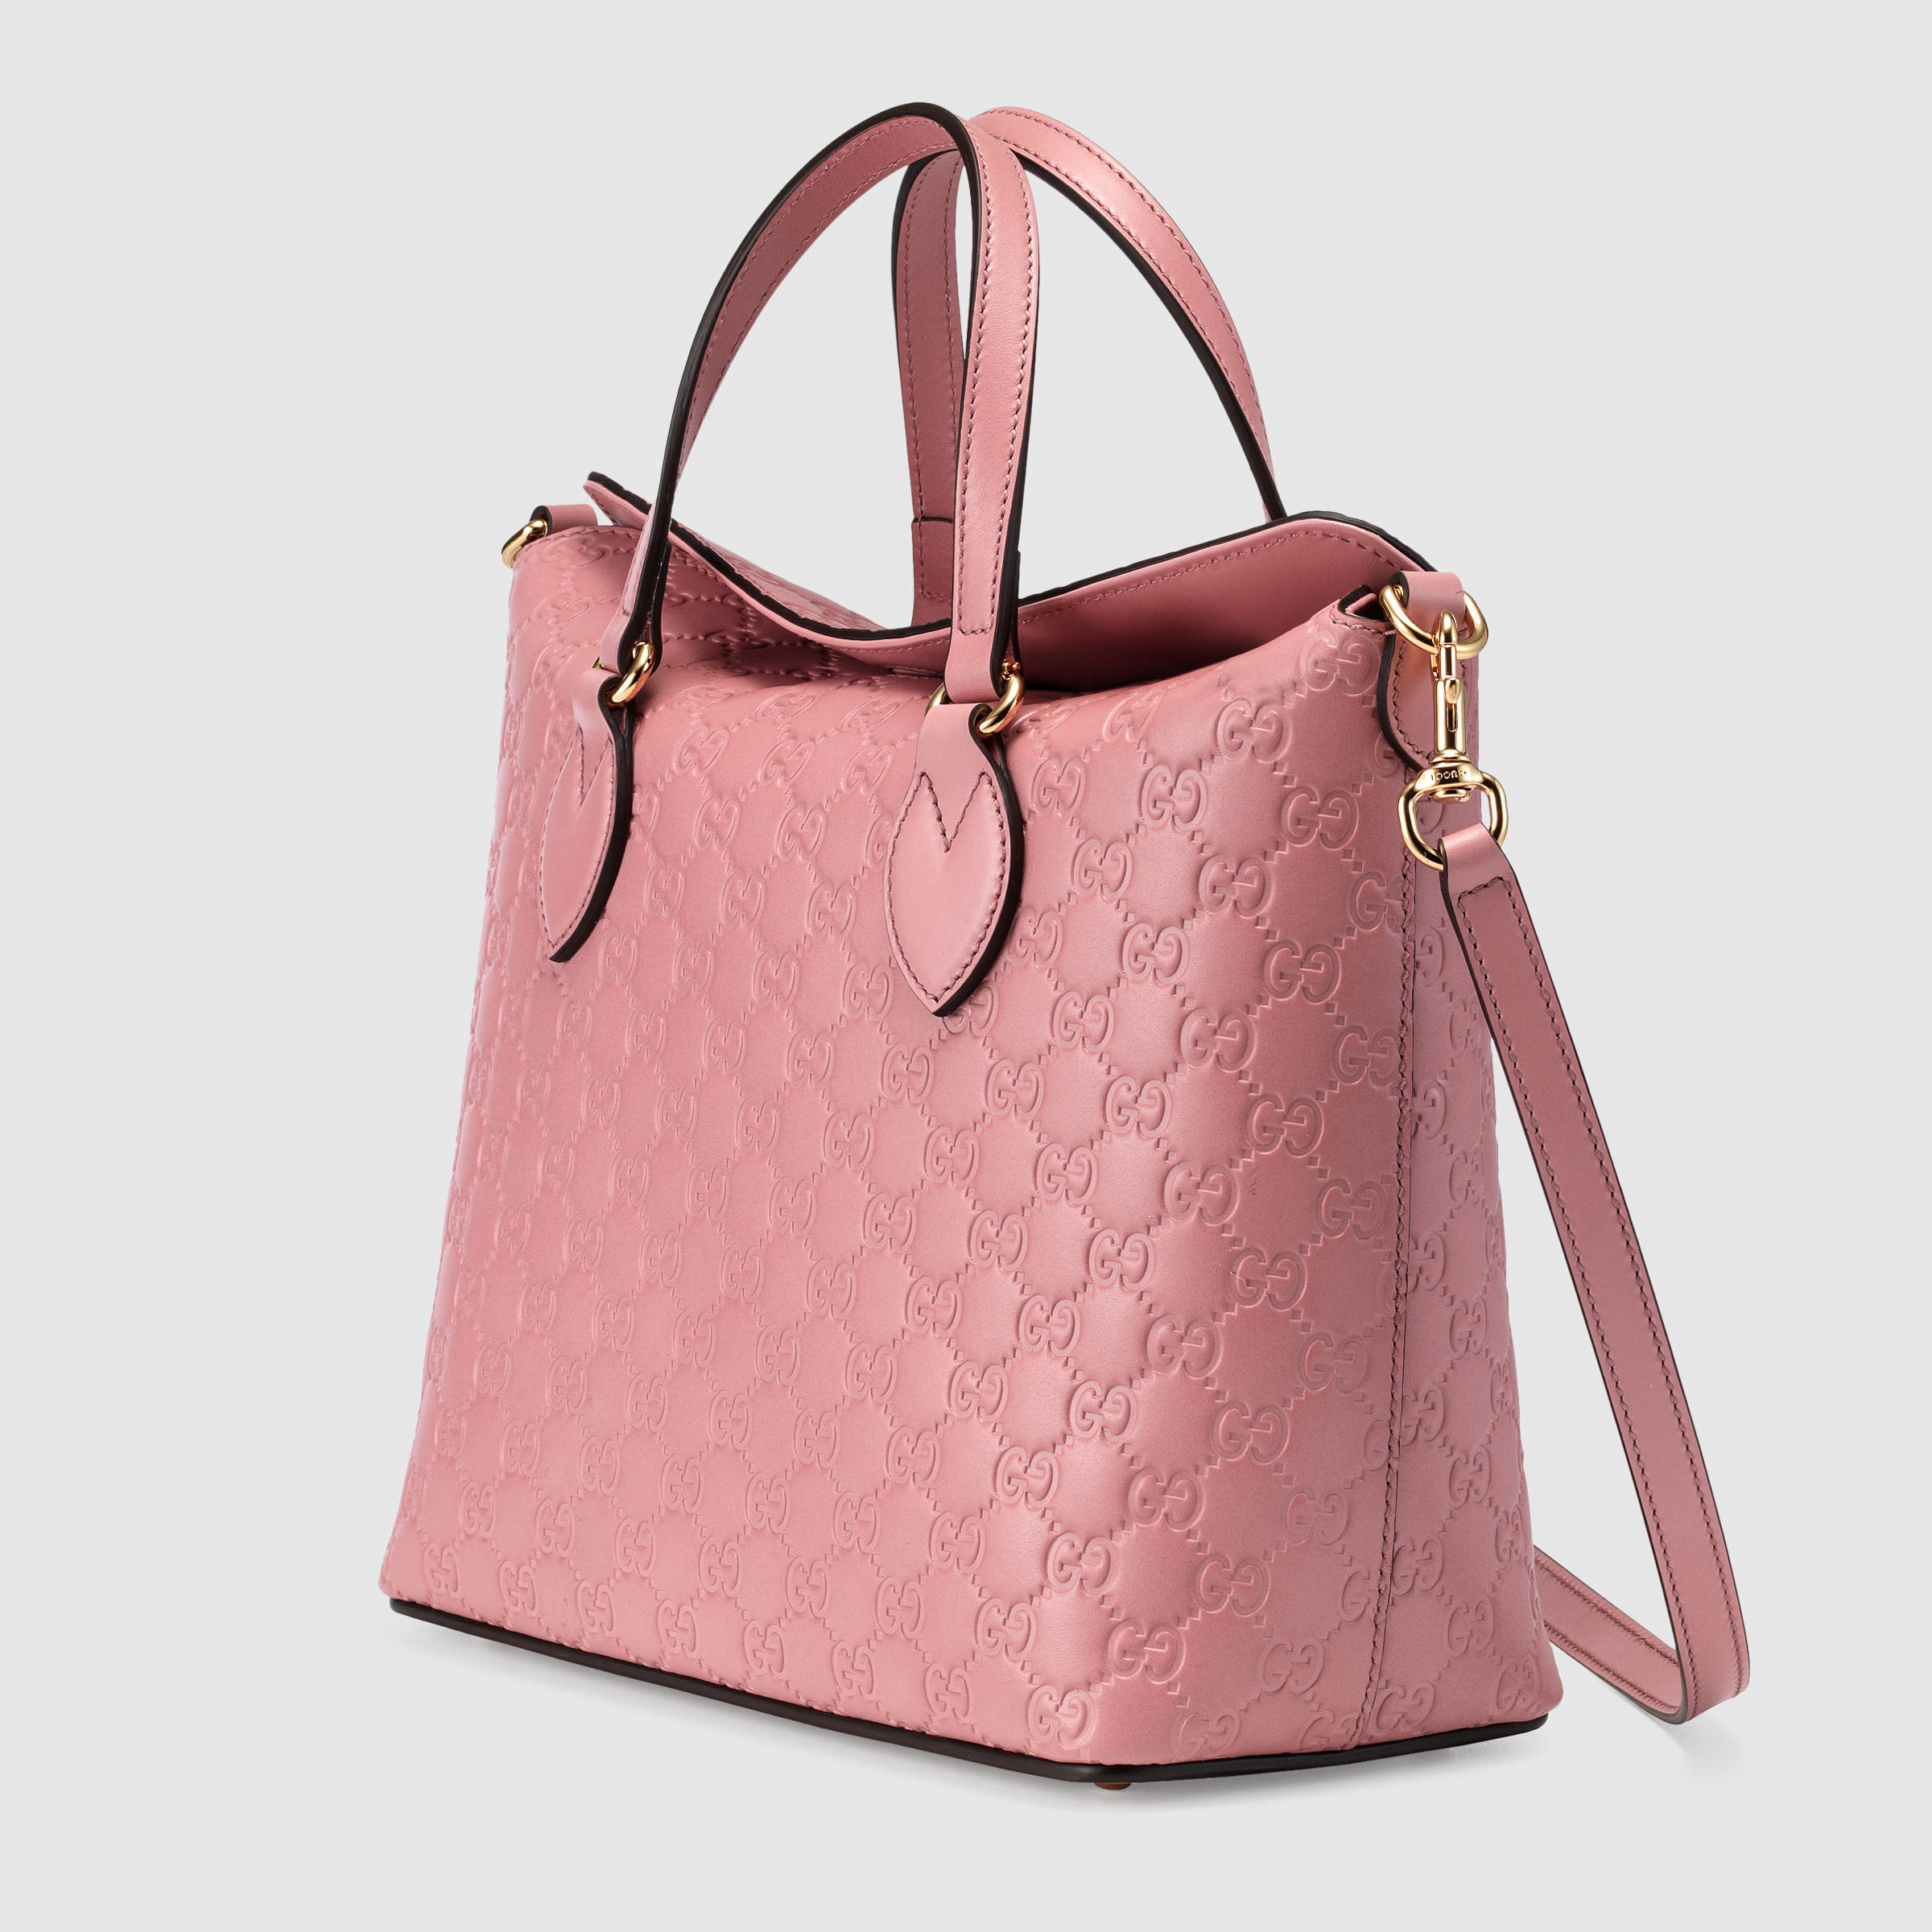 bd264f8958d2 Lyst - Gucci Signature Leather Top Handle Bag in Pink